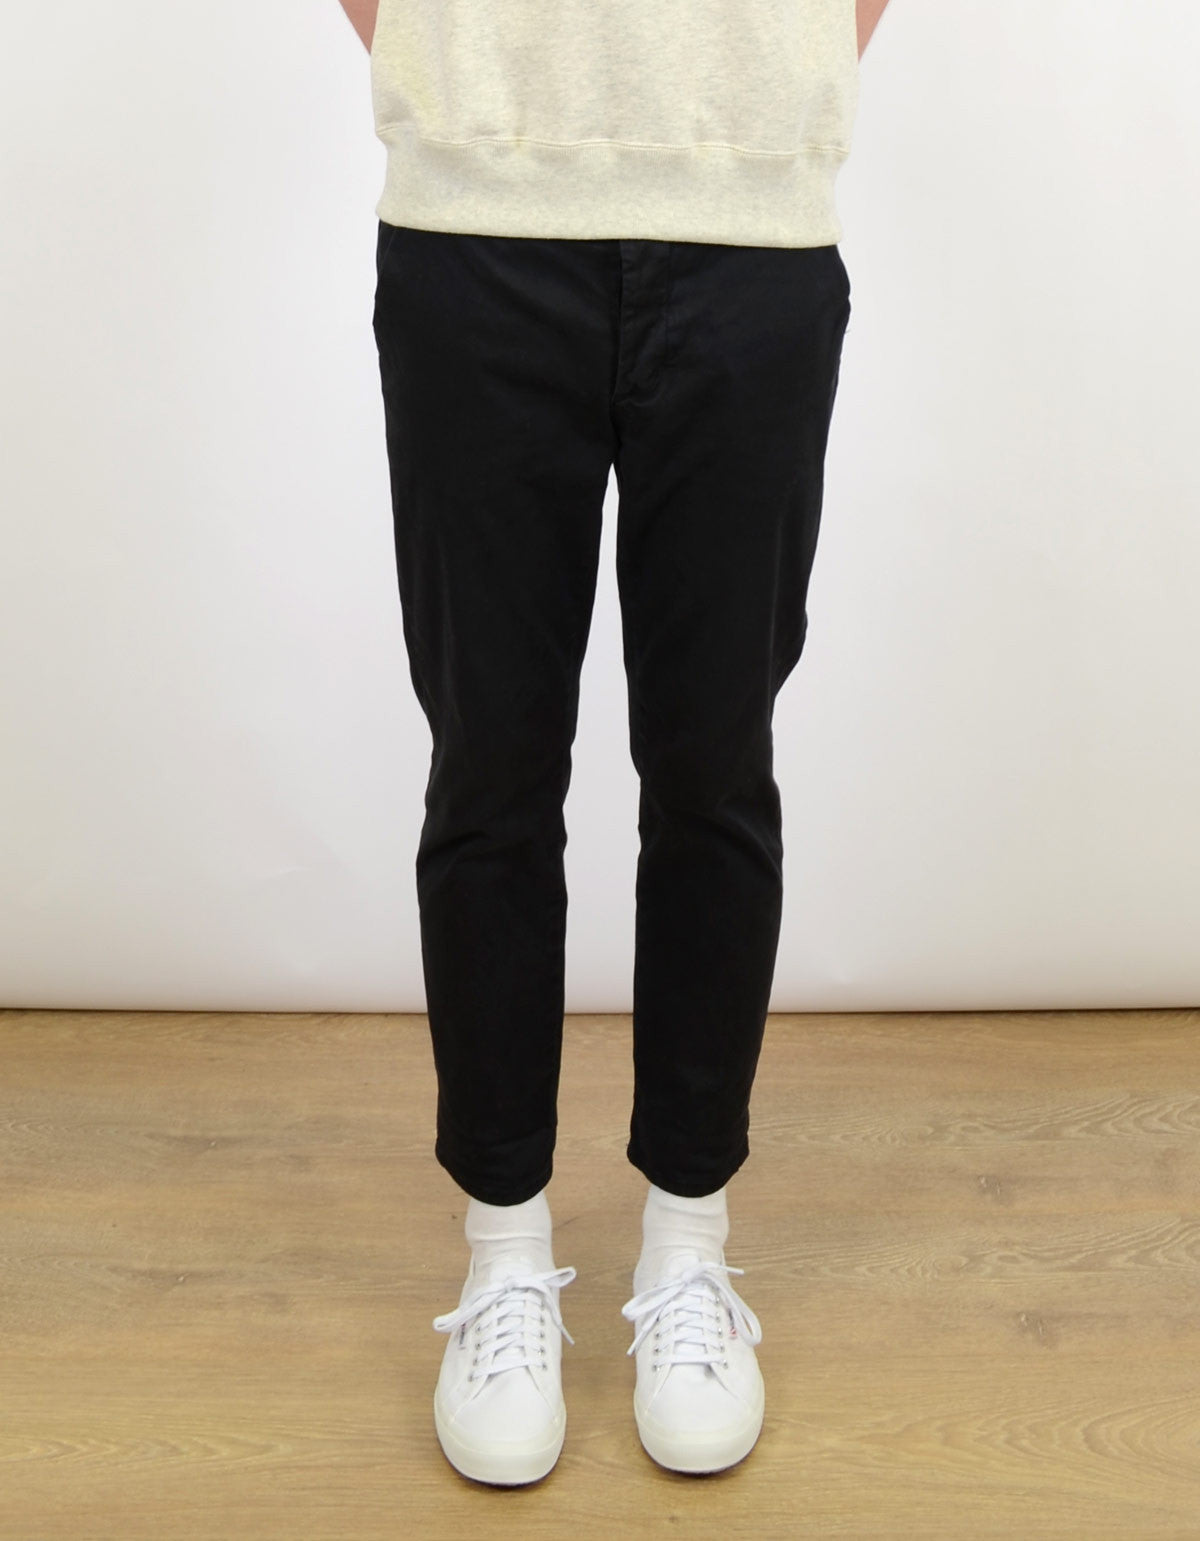 Neuw Straight Enkel Chino Cash Black - Still Life - 1